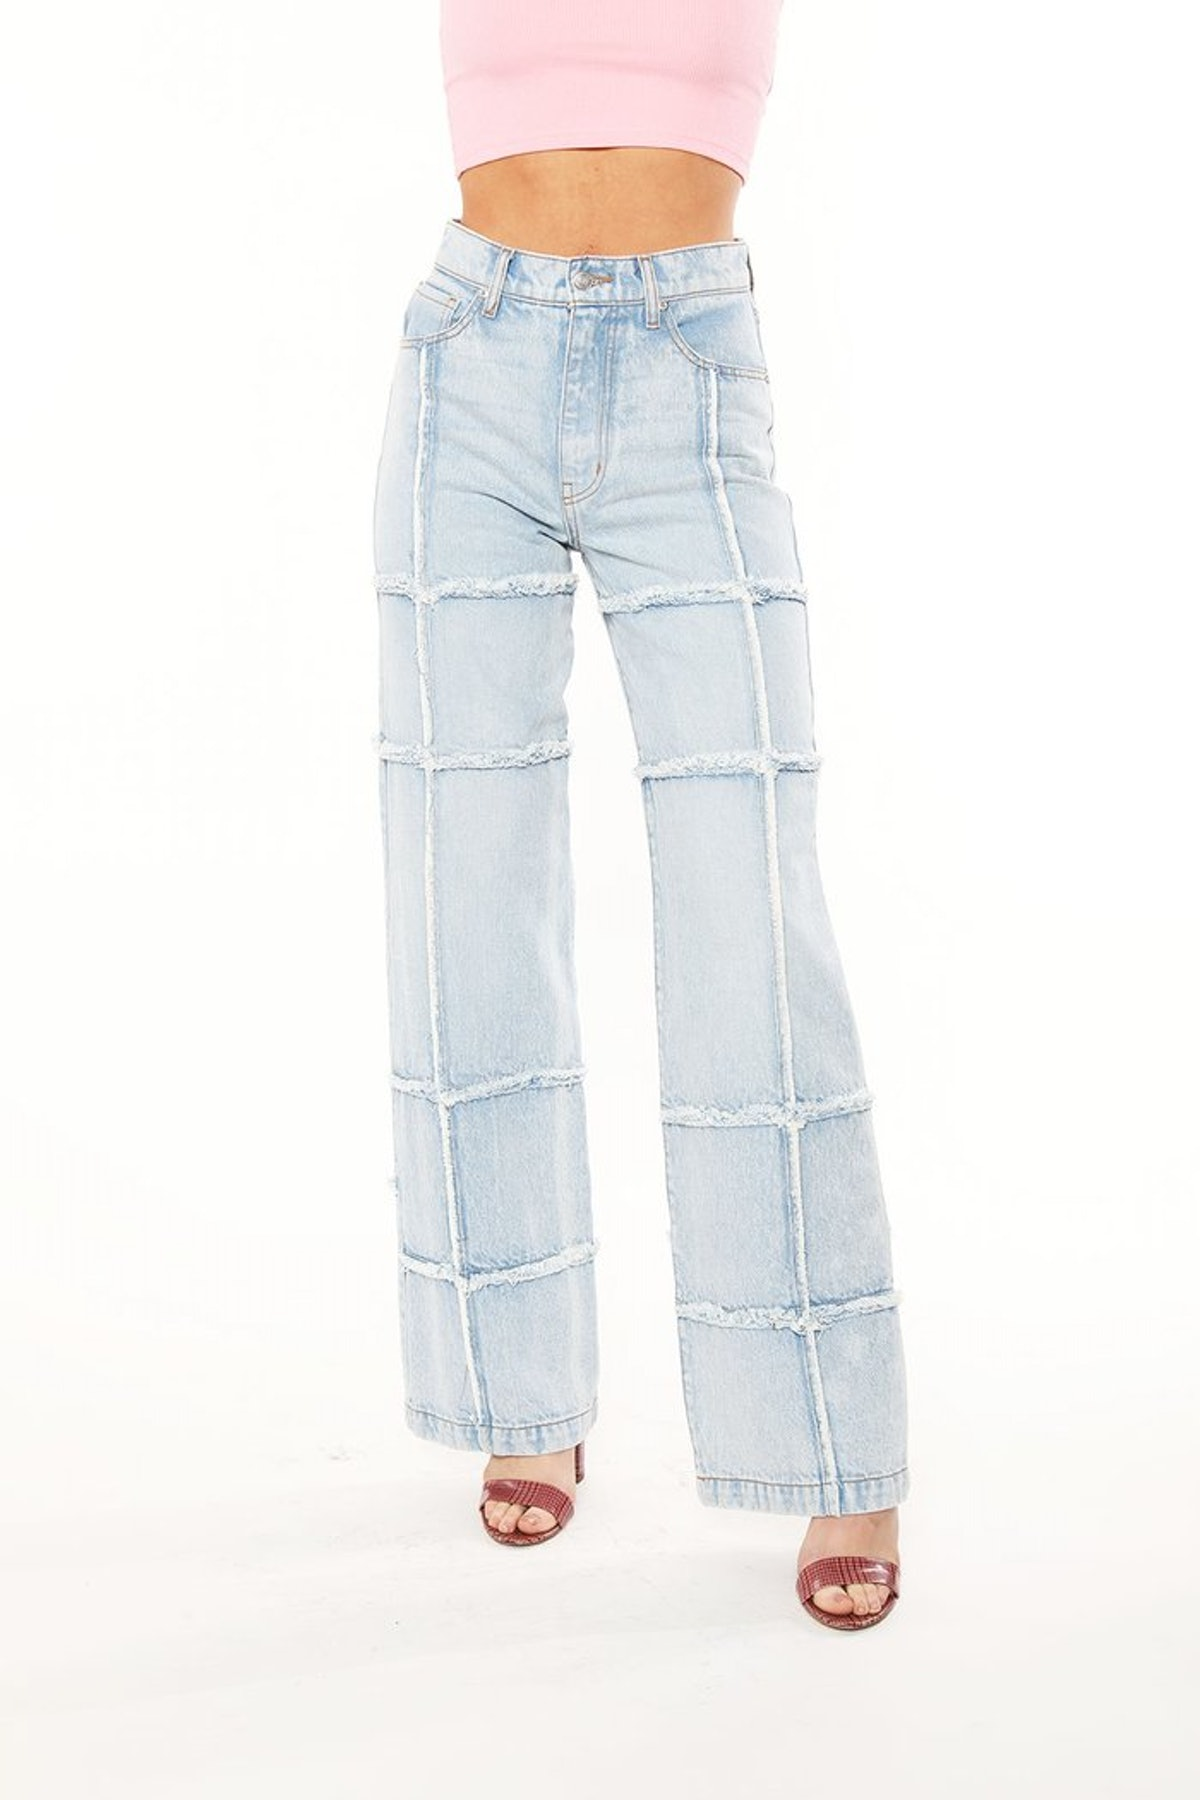 Lover / 4ever Jeans